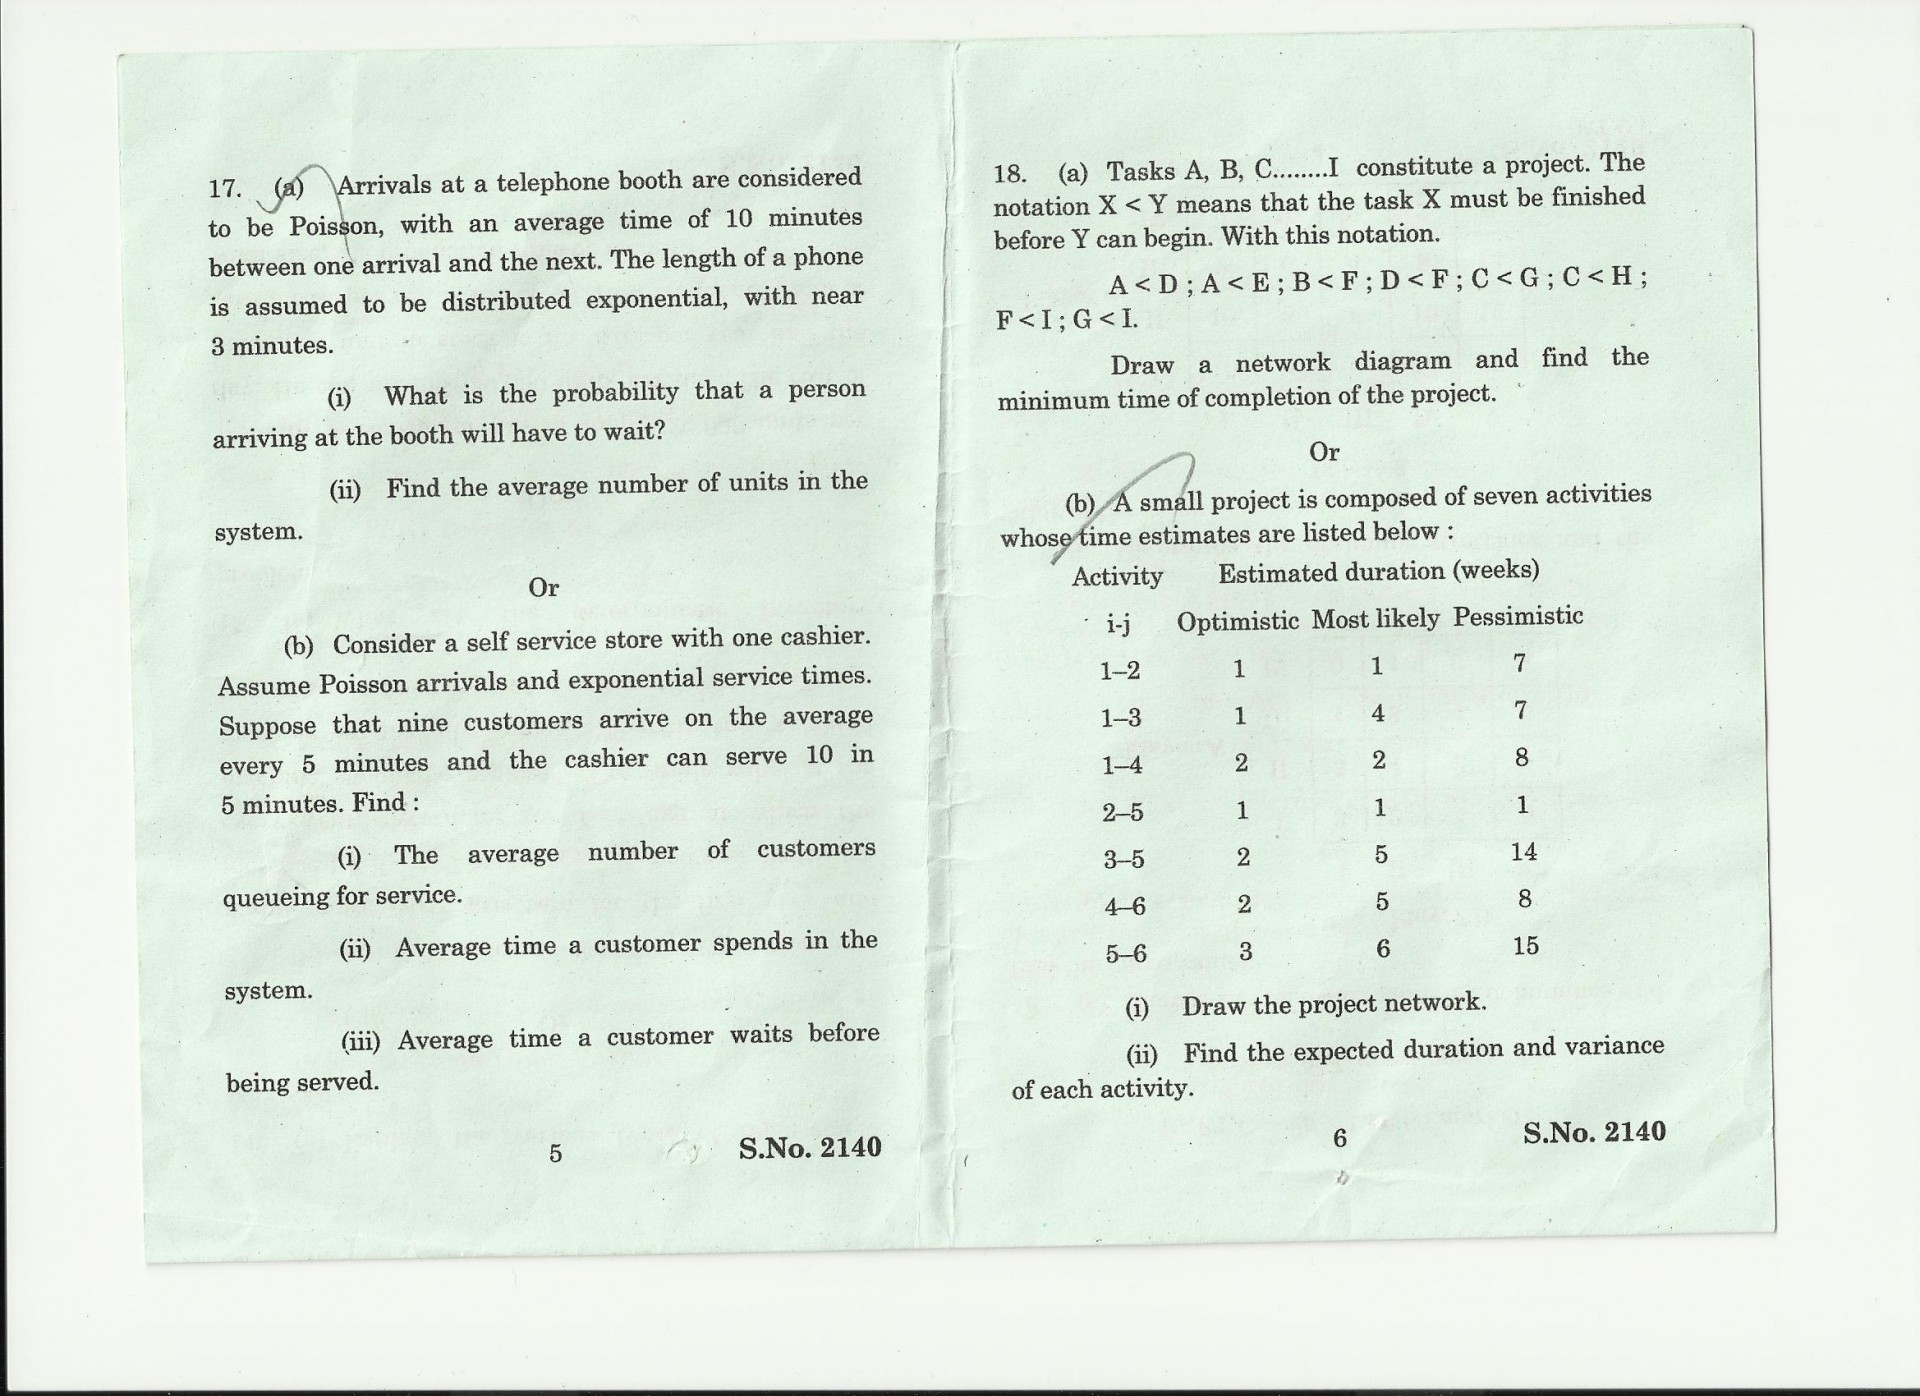 018 Questions For Research Paper Image Formidable Defense Inquiry 1920